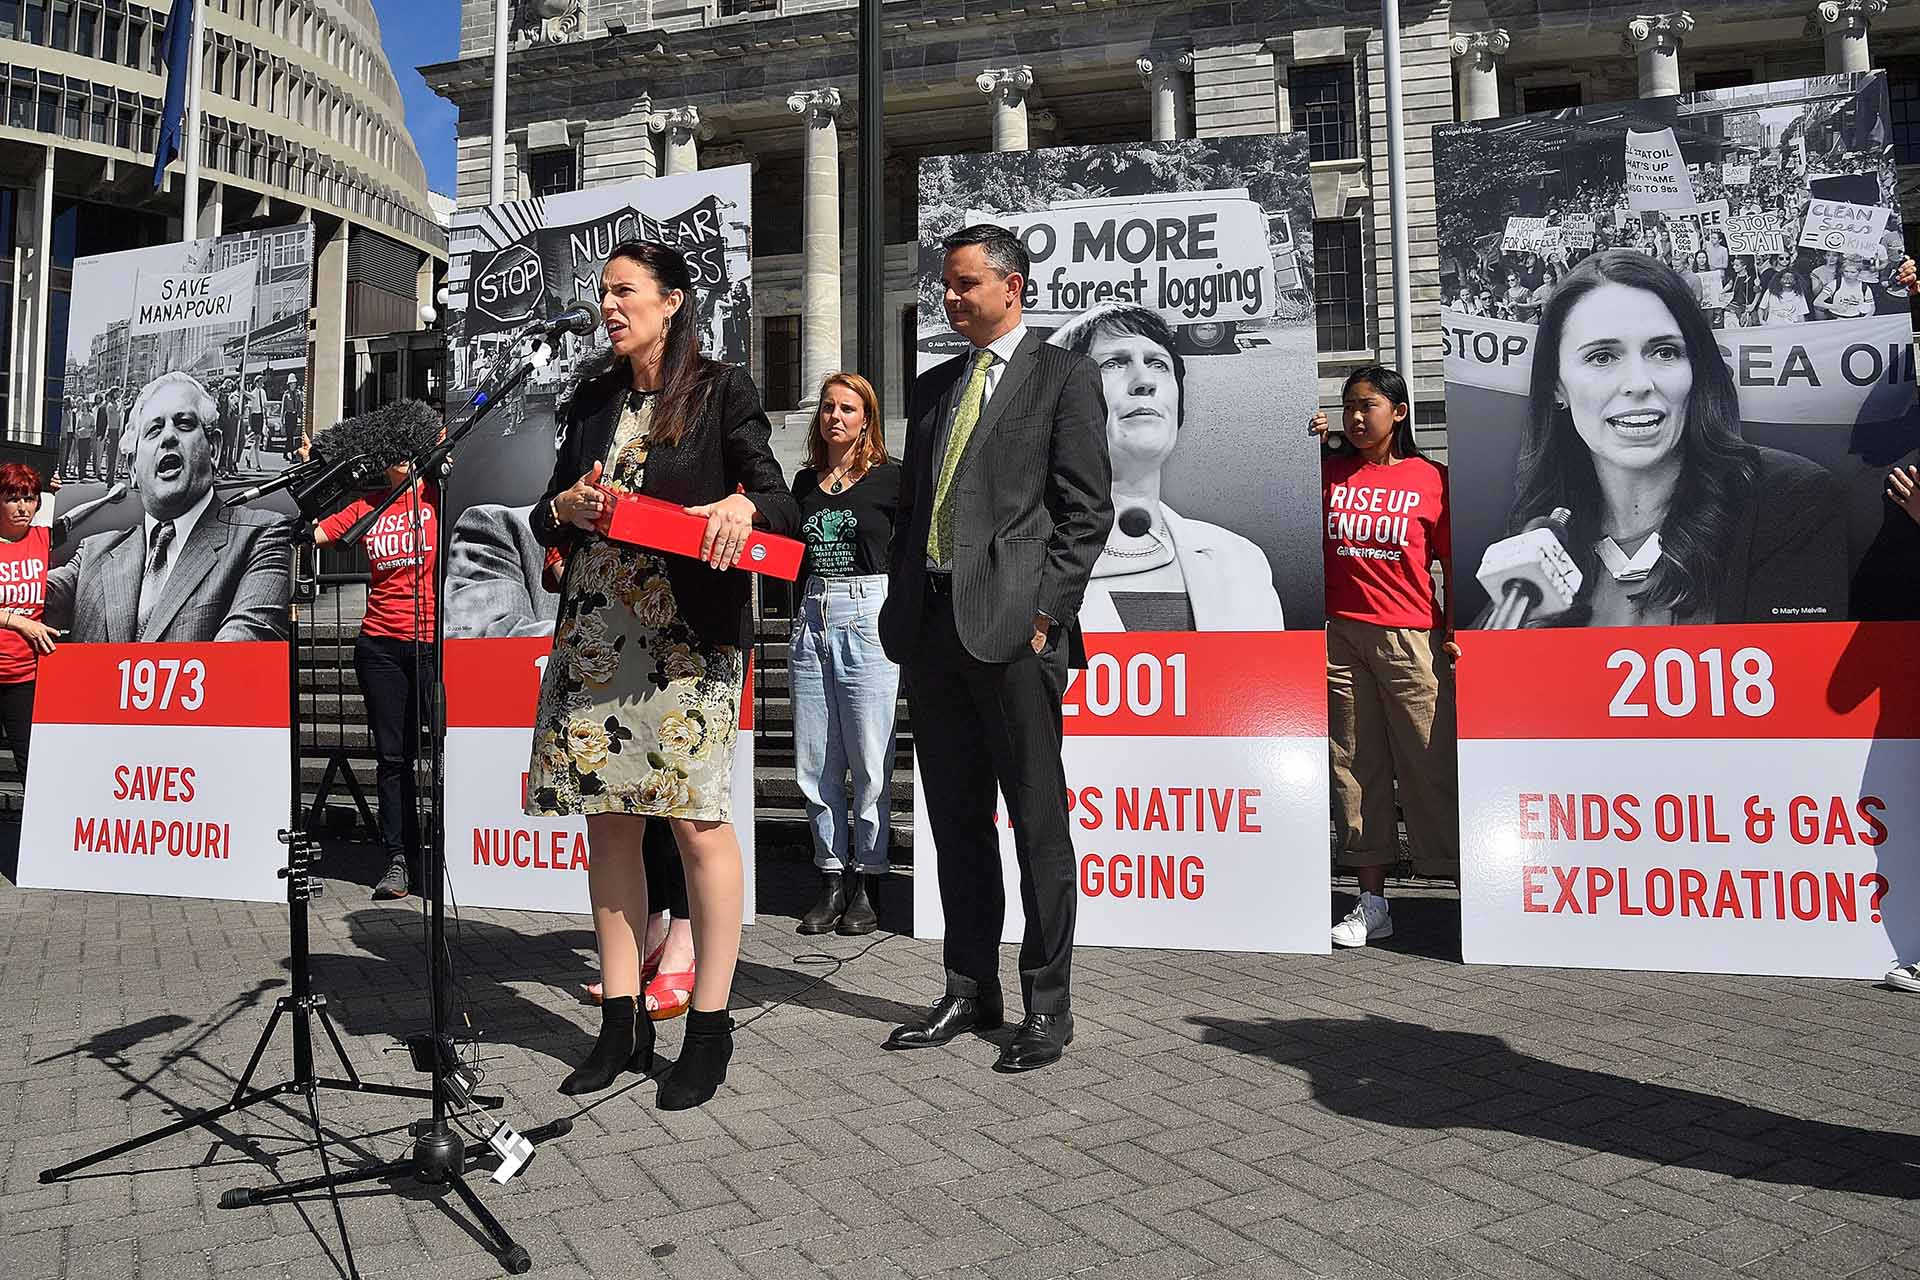 After huge election victory, Jacinda Ardern needs to show practical climate leadership